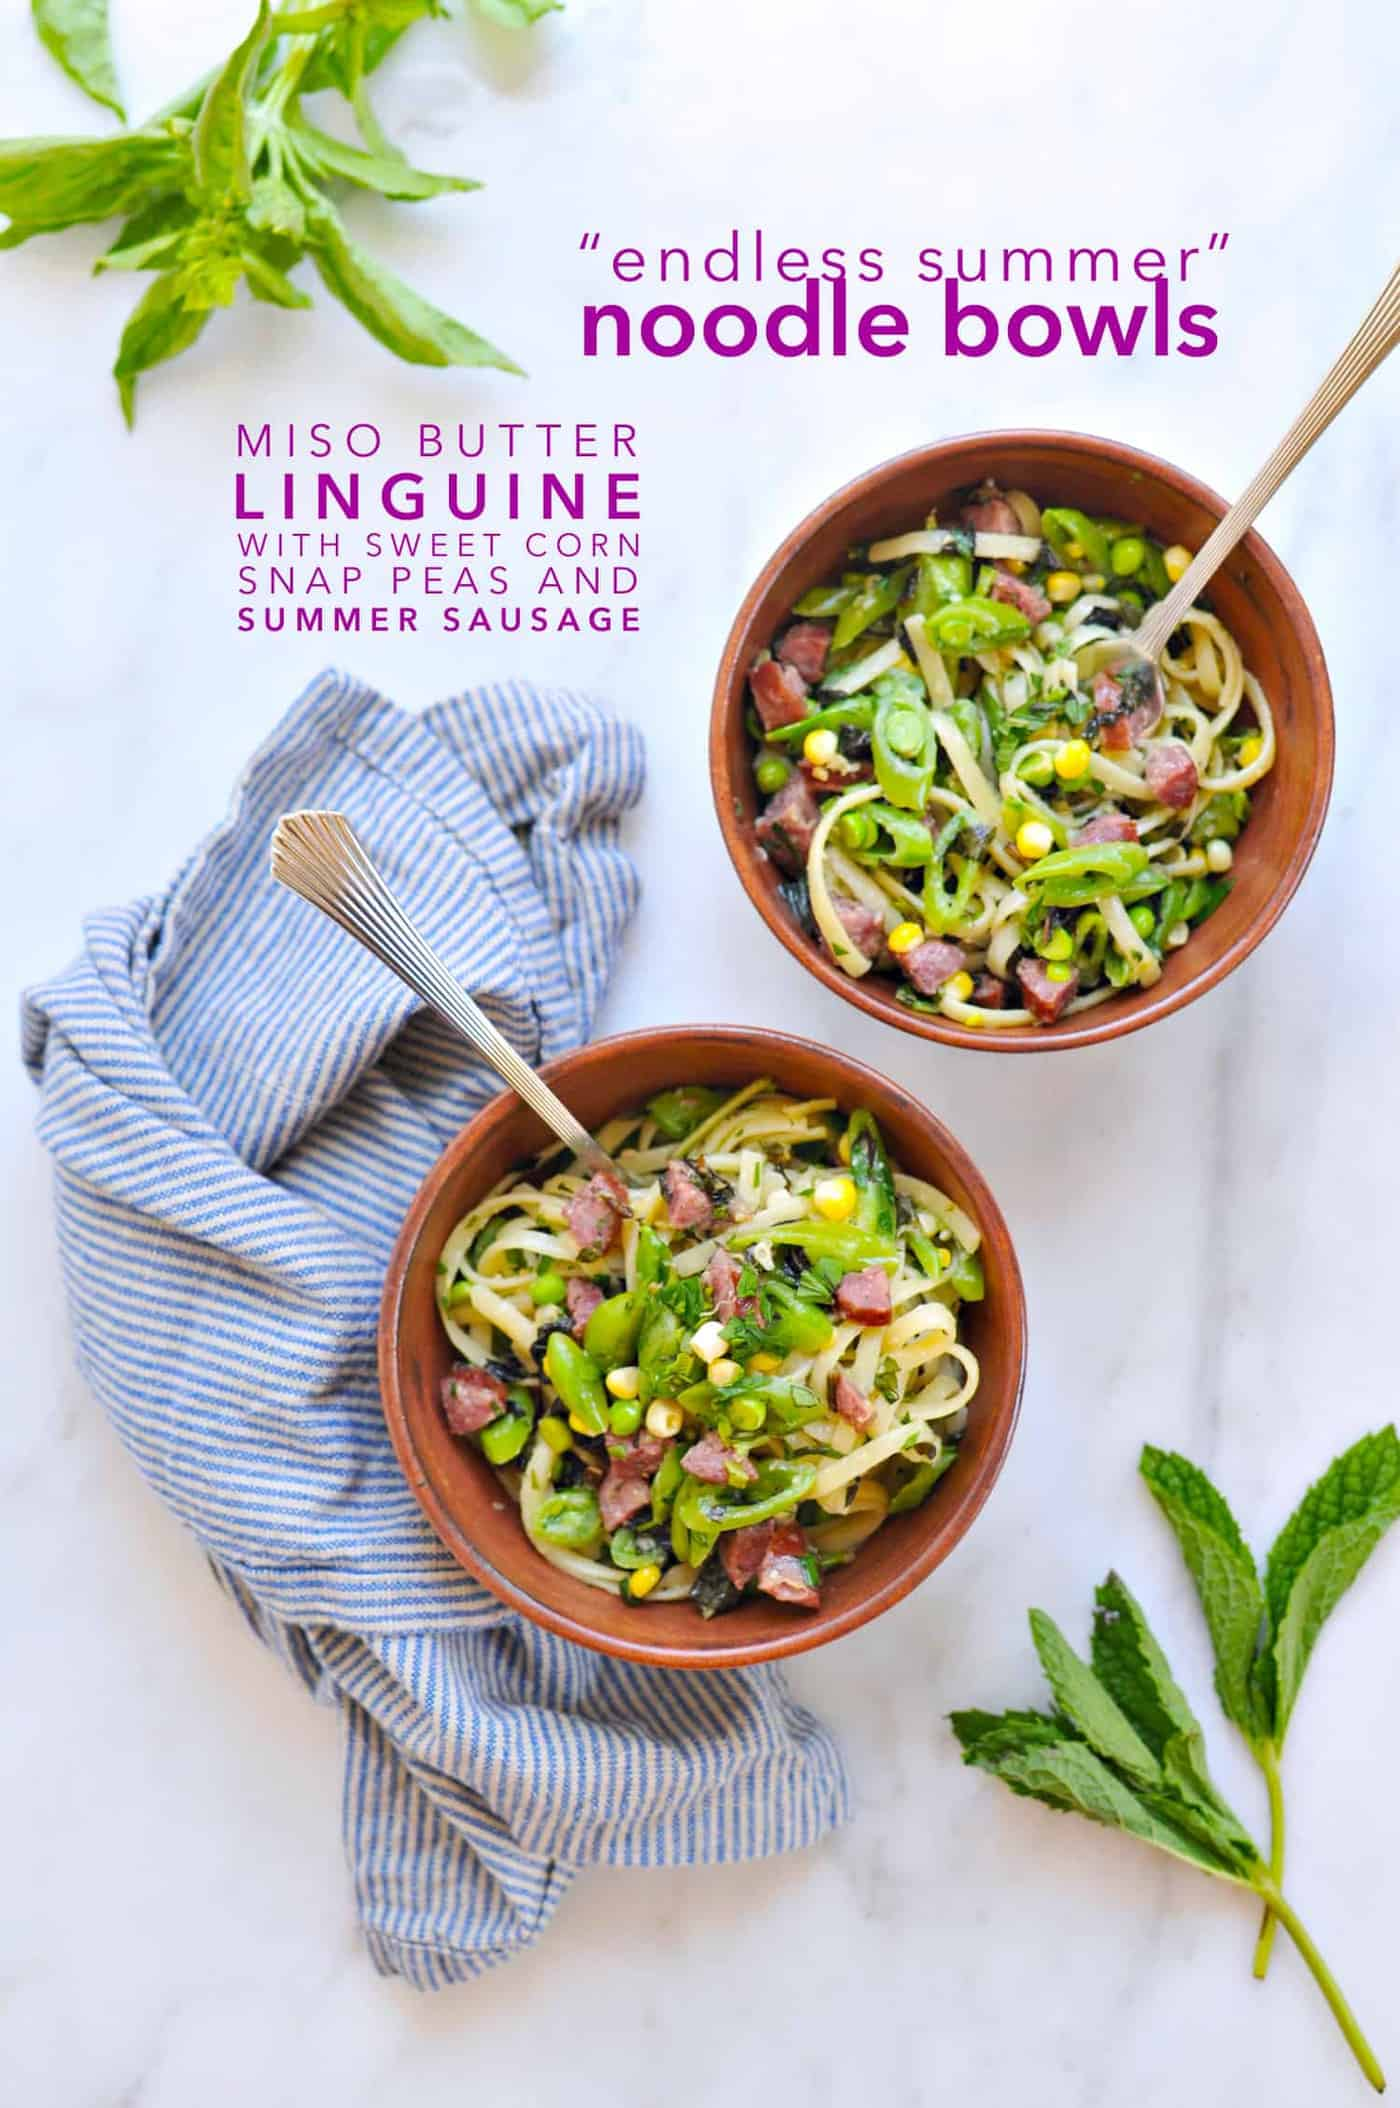 Endless Summer Noodle Bowls: Miso Butter Linguine with Sweet Corn, Snap Peas + Summer Sausage recipe (via thepigandquill.com) #pasta #veggies #basil